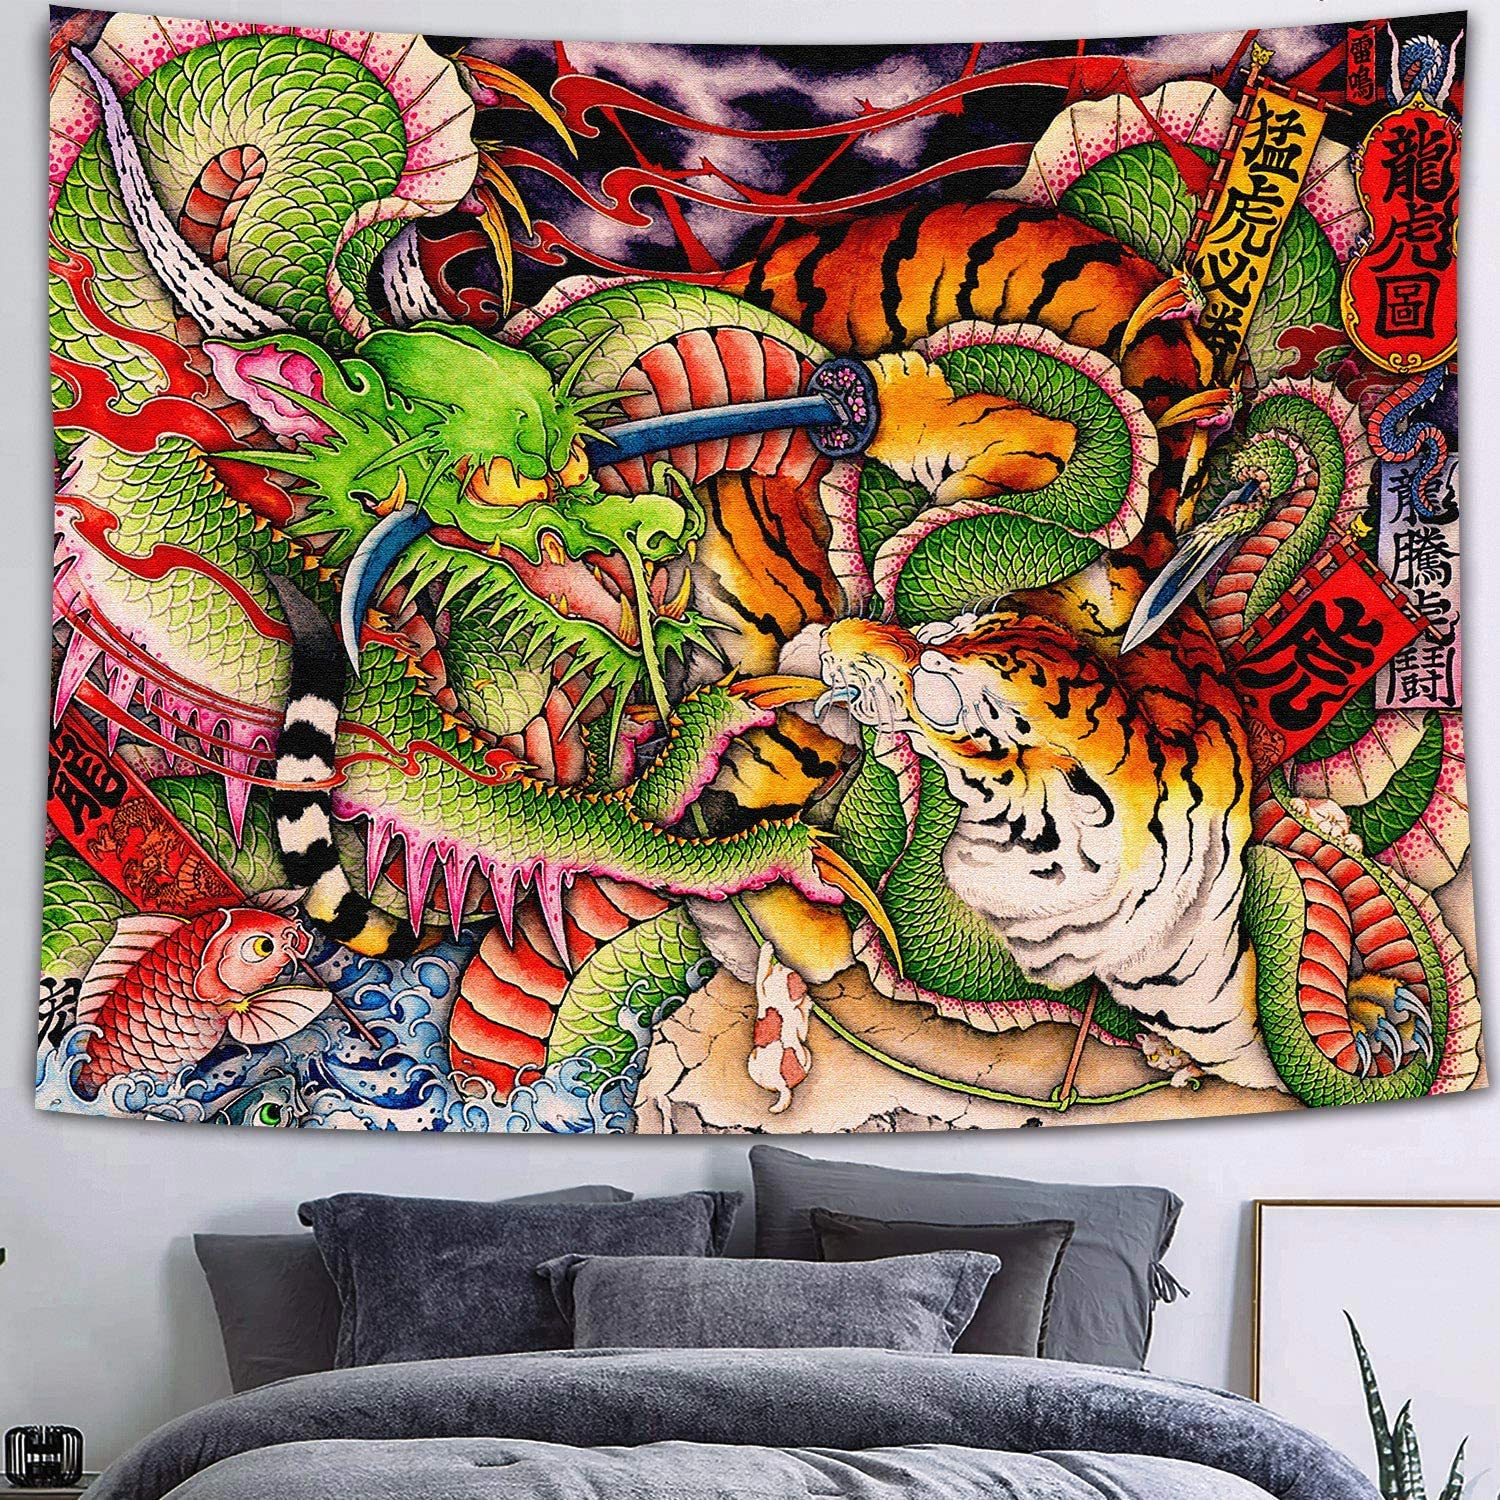 FEASRT Japanese Ukiyo-e Tapestry Dragon and Tiger Tapestries Wall Hanging for Living Room Bedroom Dorm Home Decor Banner 80×60 Inches GTZYAY55